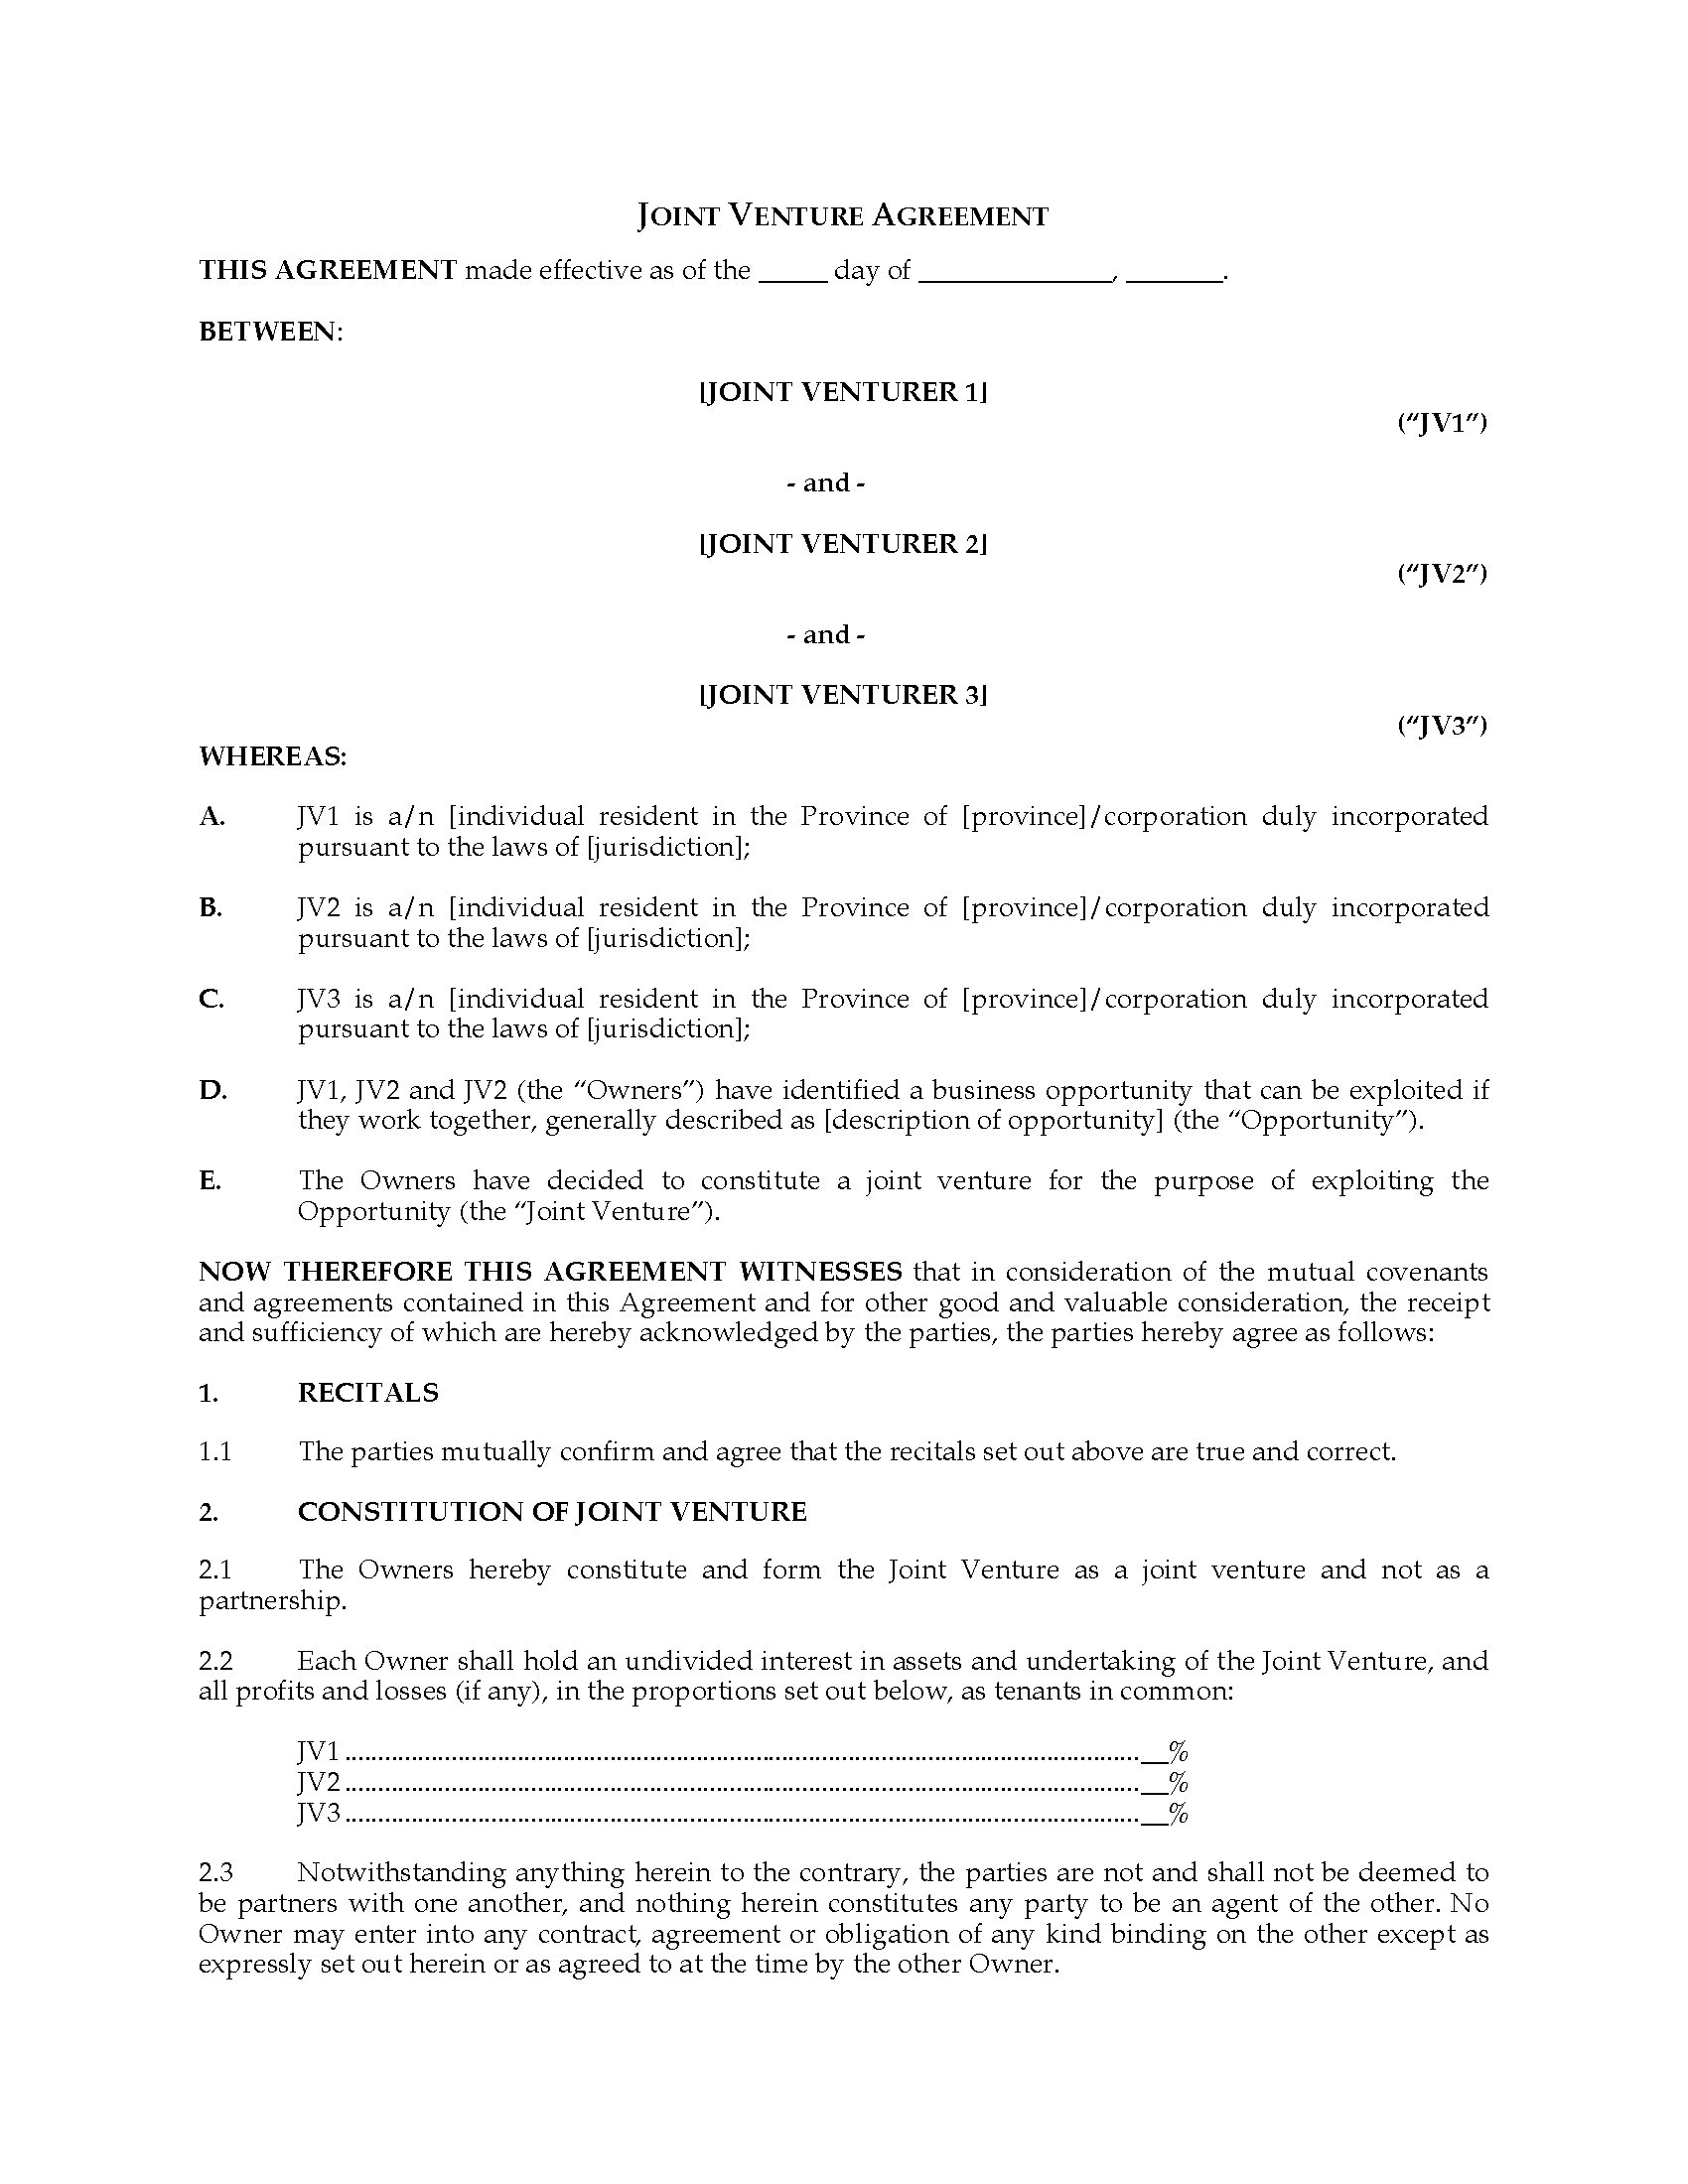 Joint Venture Agreement Template Singapore